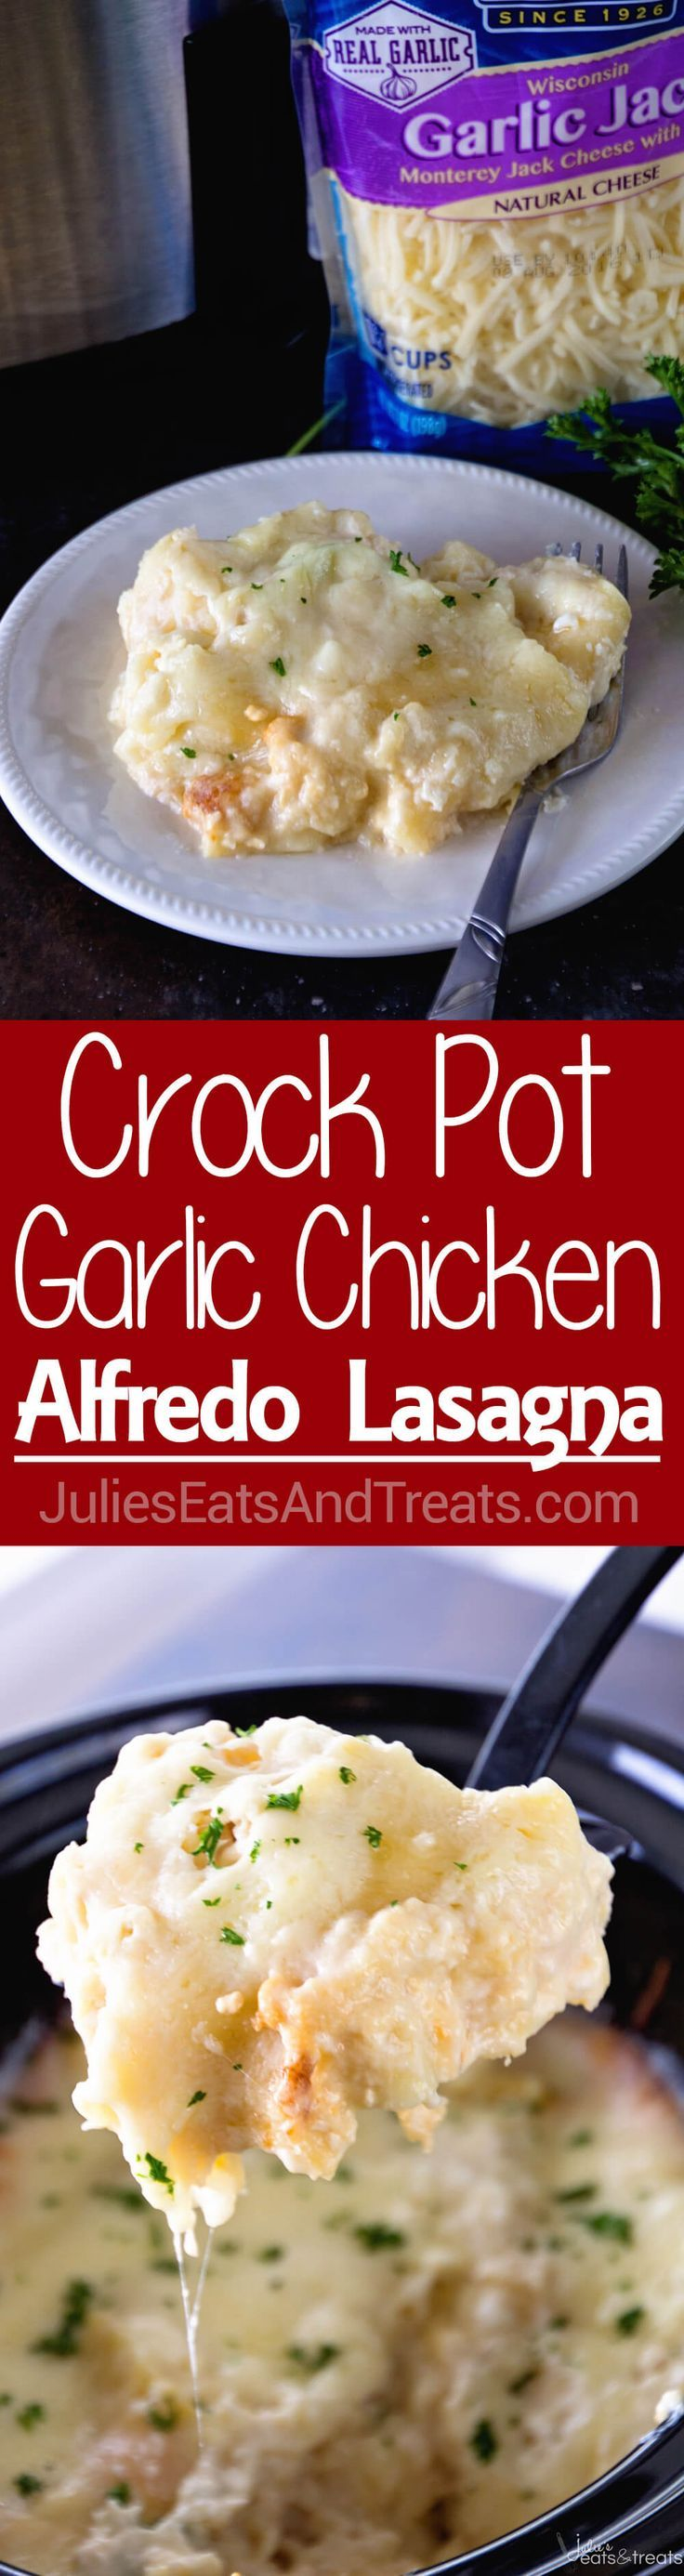 Crock Pot Garlic Chicken Alfredo Lasagna ~ Slow Cooker Lasagna Loaded with Chicken, Alfredo and Garlic! This is the Perfect Comfort… #CrystalFarmsCheese #CheeseLove #ad